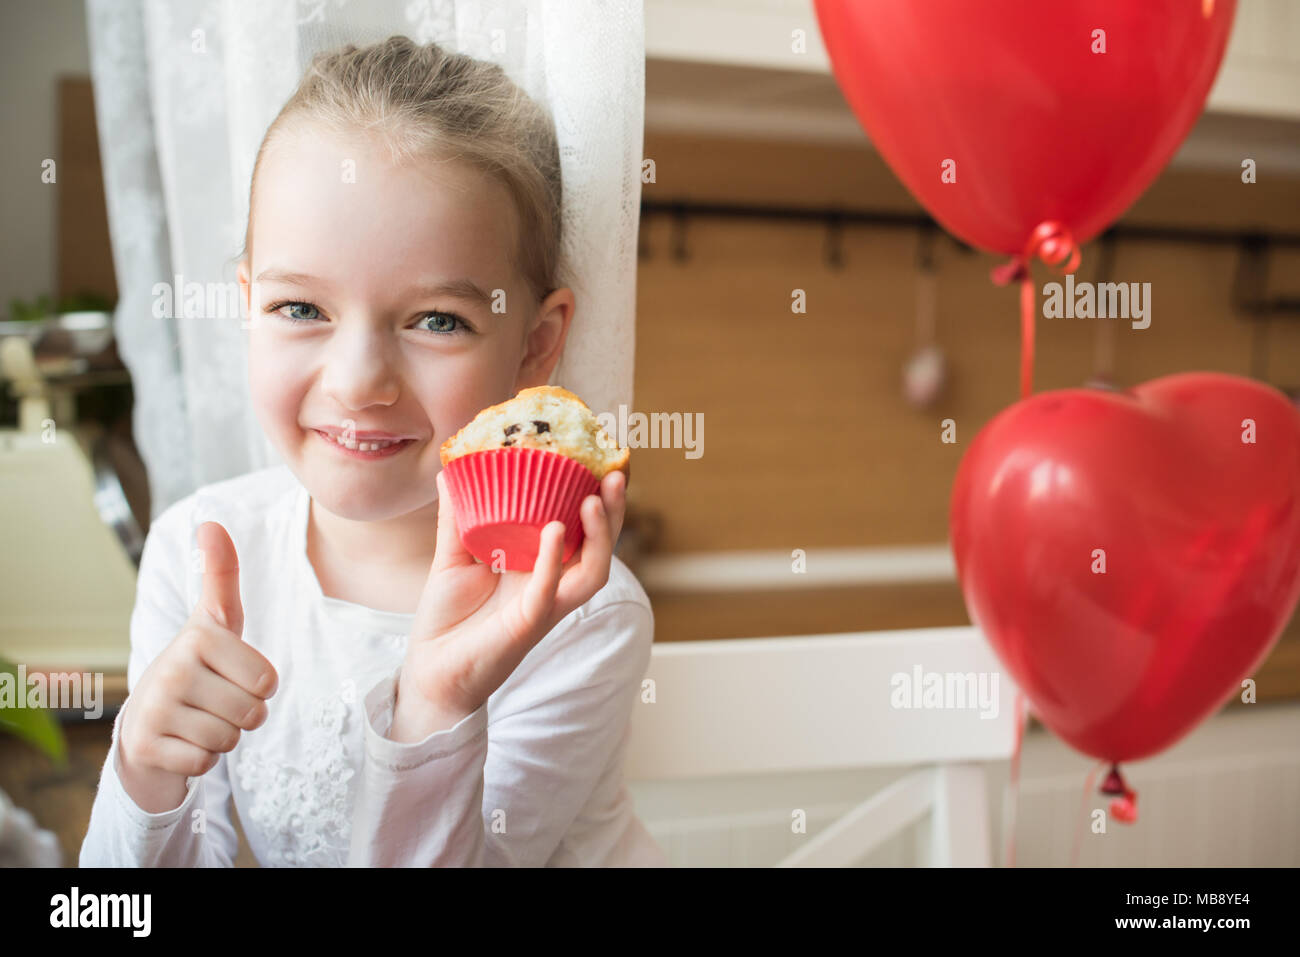 Cute preschooler girl celebrating 6th birthday. Girl eating her birthday cupcake in the kitchen, surrounded by balloons, showing thumbs up. - Stock Image